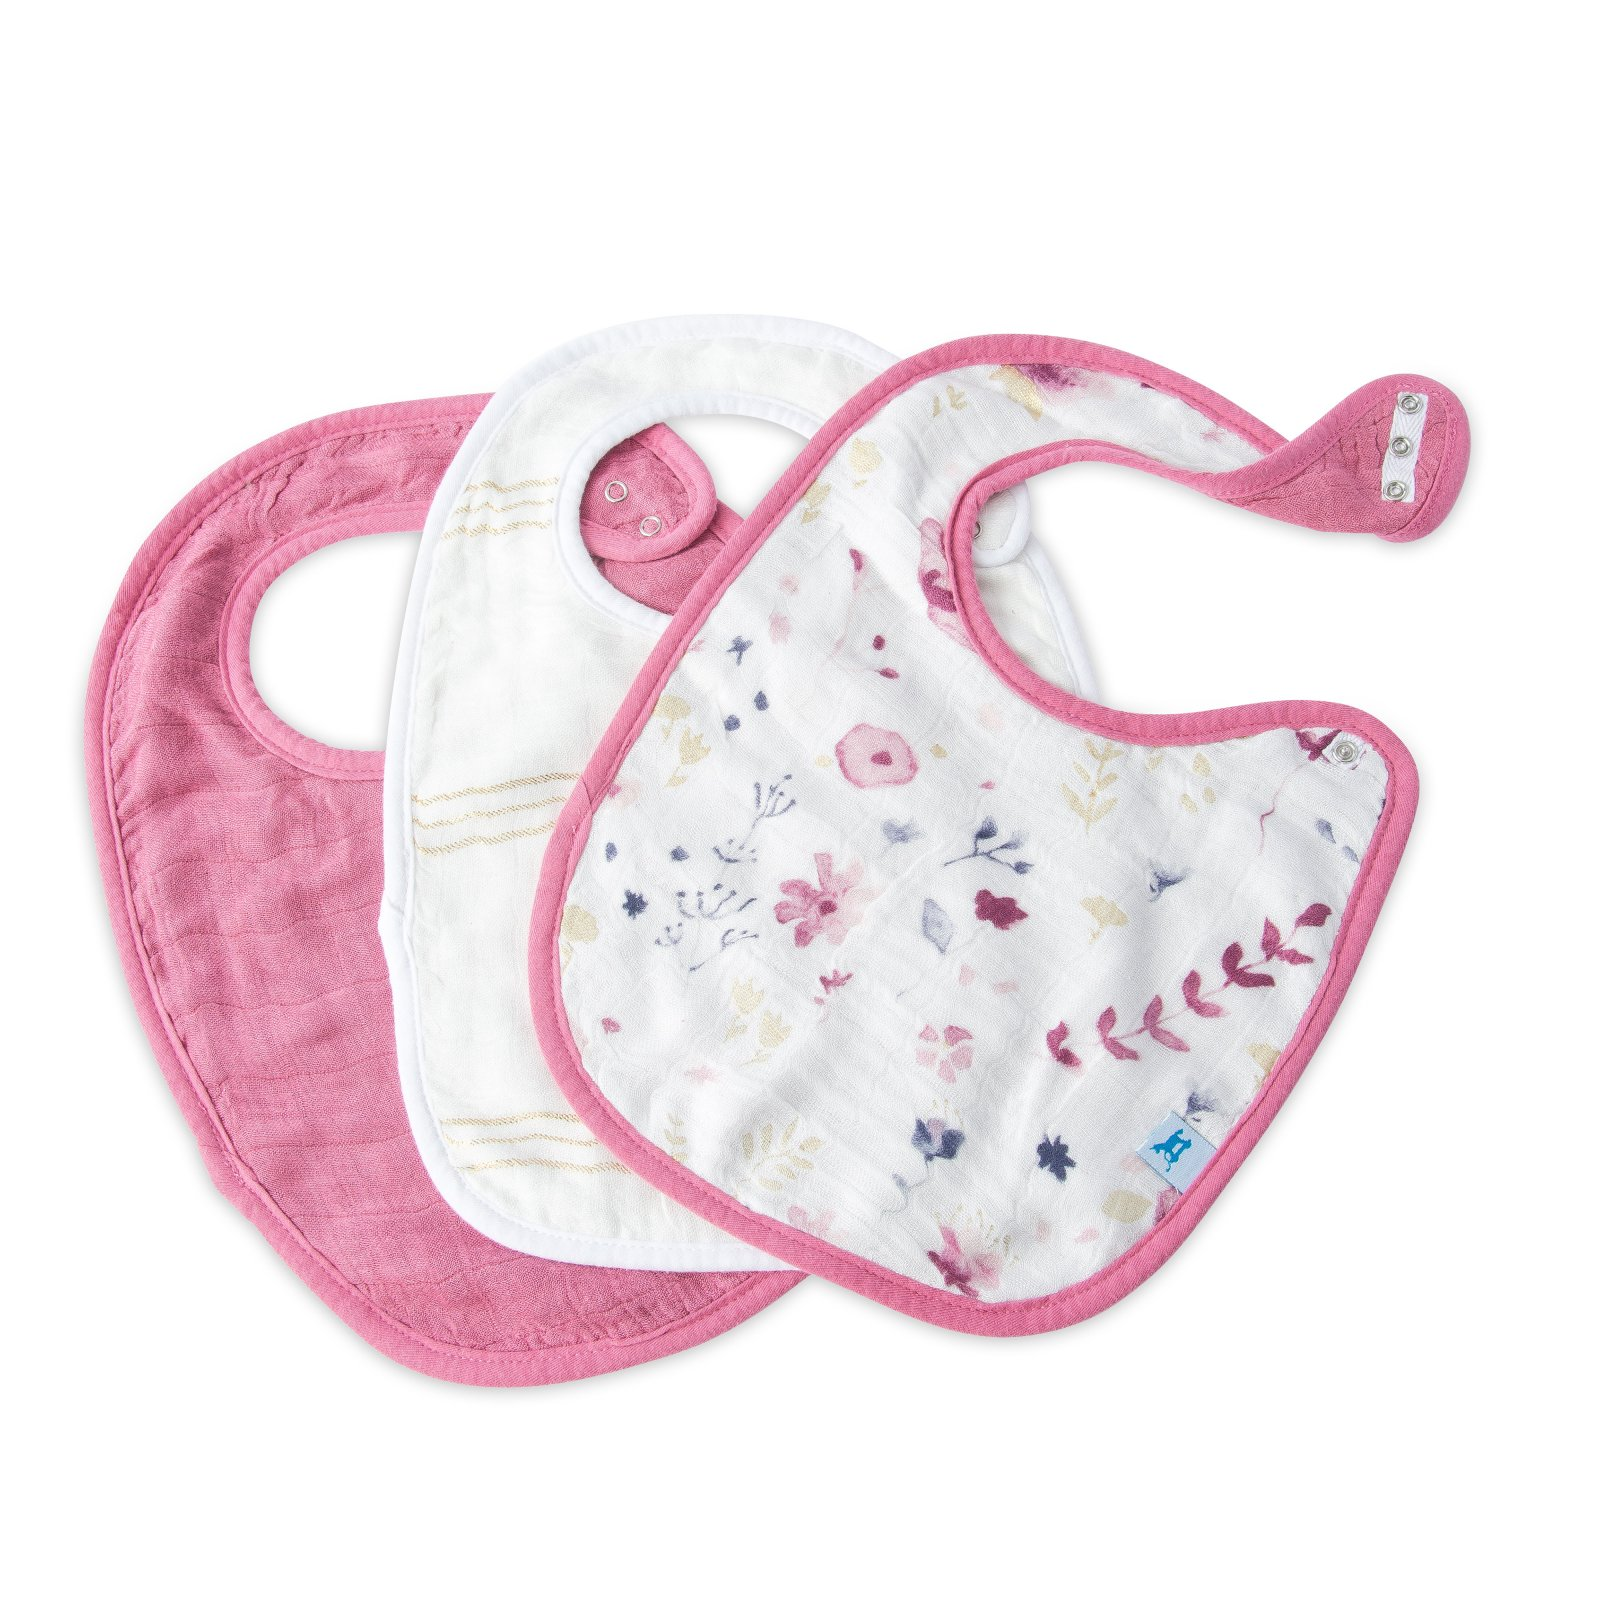 Little Unicorn Deluxe Muslin Classic Bib 3 Pack - Fairy Garden